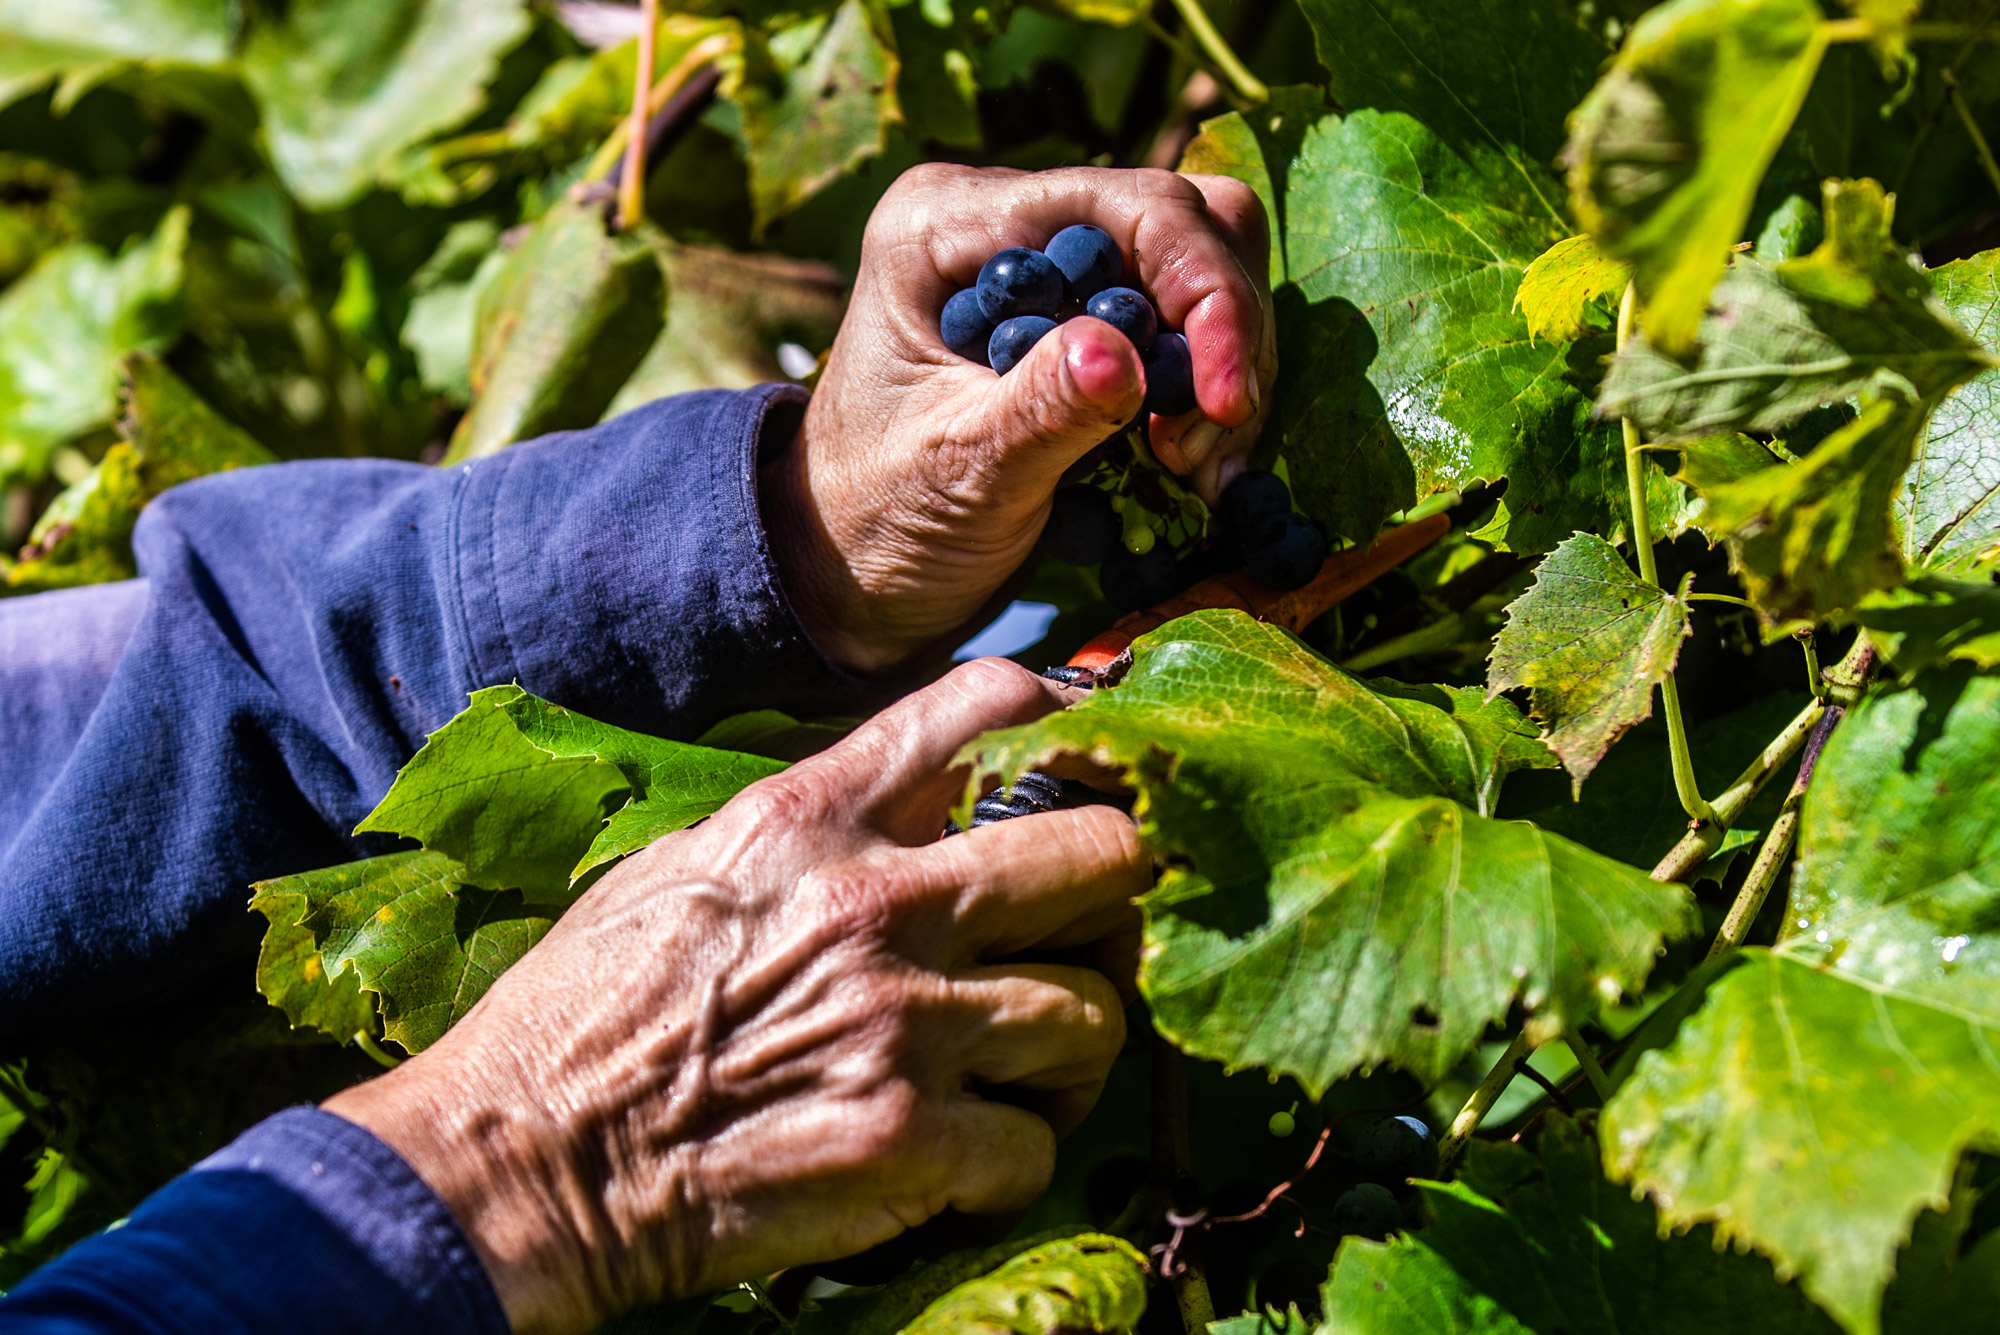 A hand pulls grapes from the vine on a vineyard